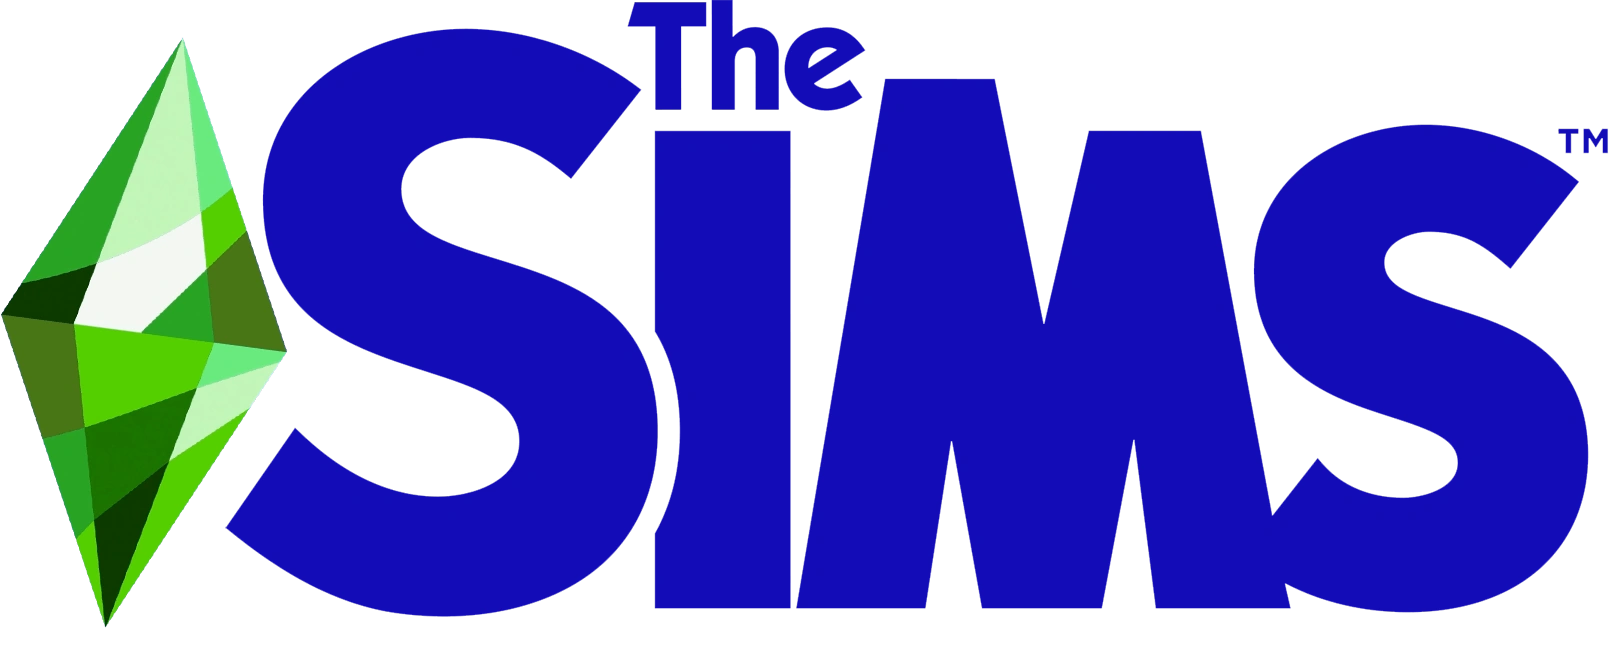 Sims 3 Logo: Save 75 On The Sims 3 On Steam – Articleblog info